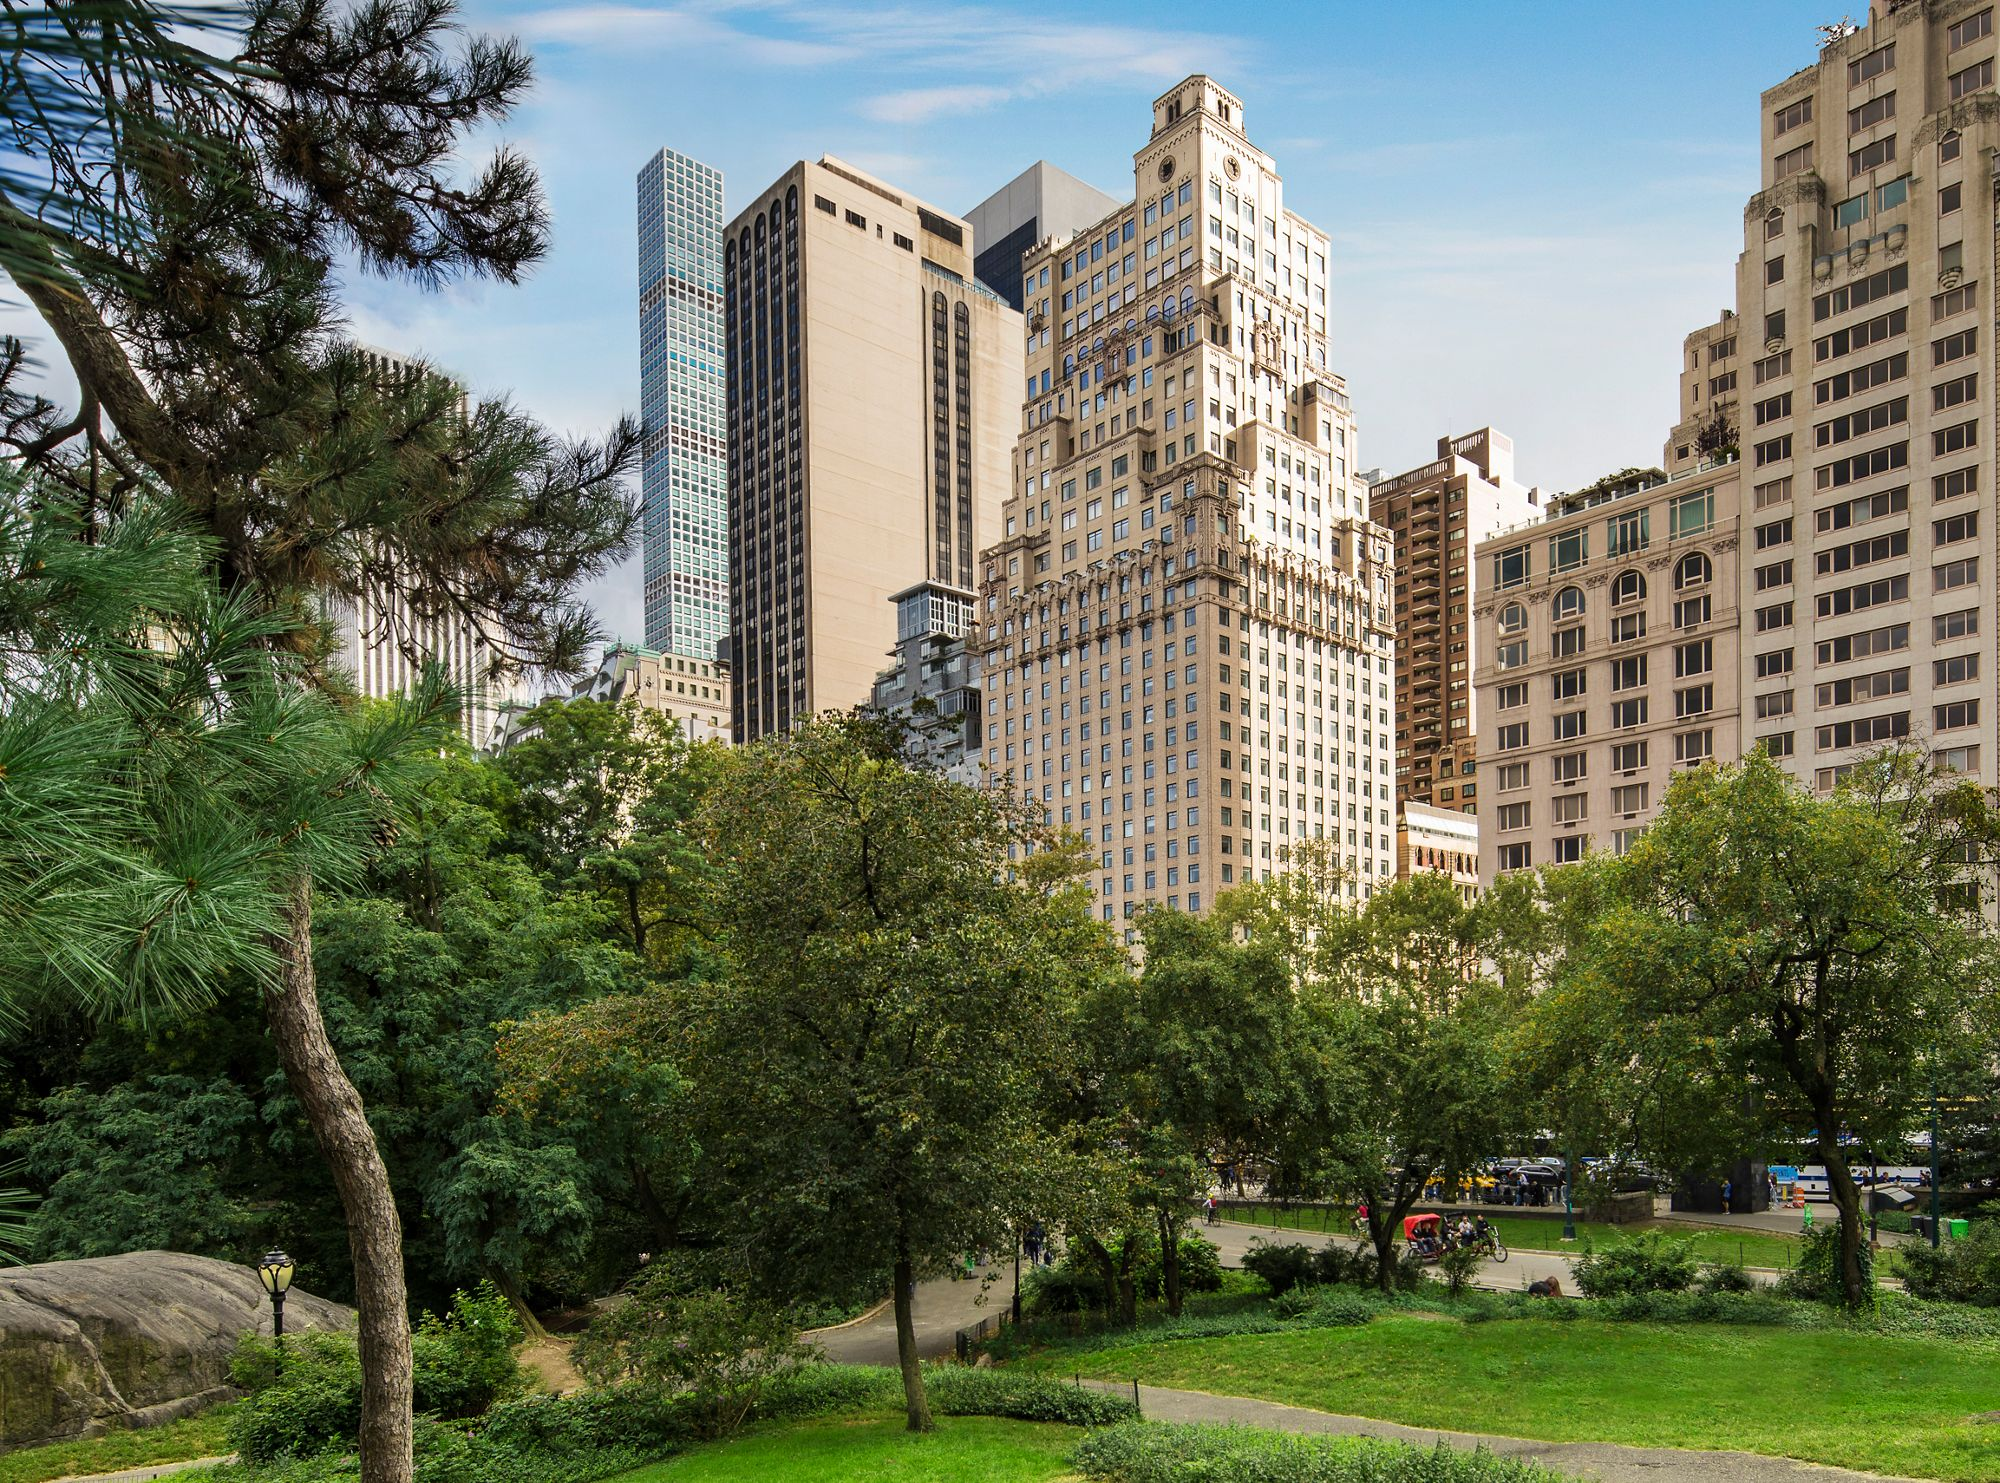 Luxury Central Park Hotel | The Ritz-Carlton New York, Central Park